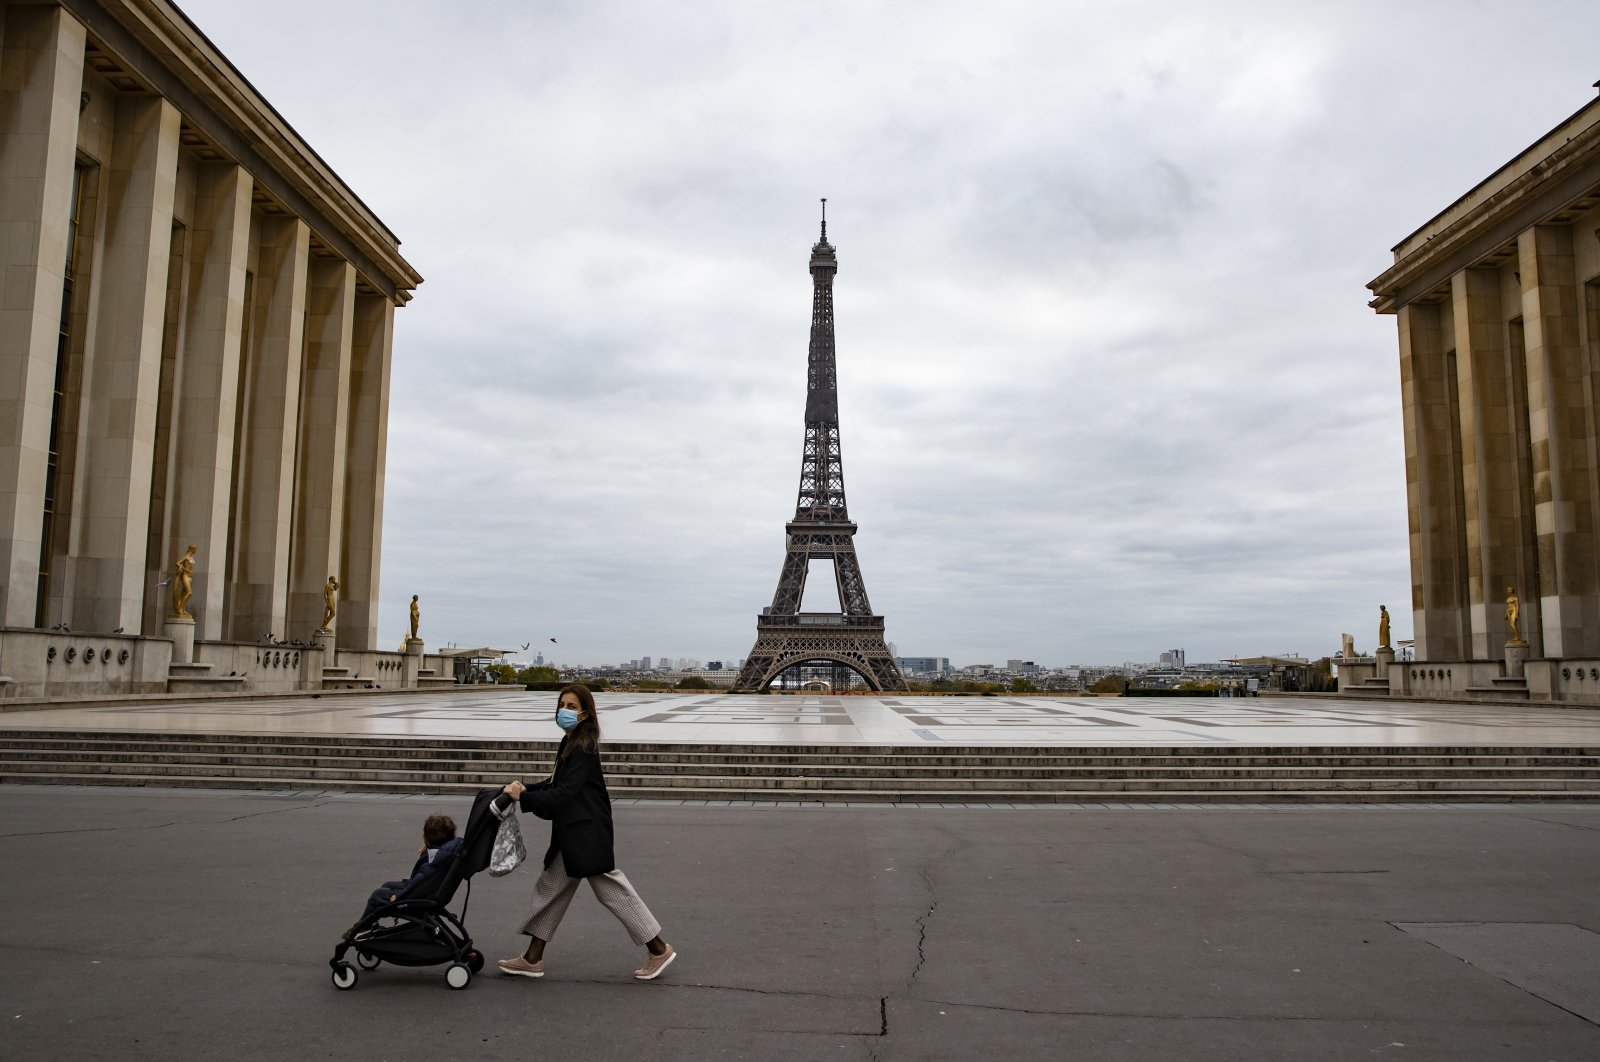 A woman pushes a stroller across a deserted Trocadero Square near the Eiffel Tower on the first morning of the second national lockdown, Paris, Oct. 30, 2020. (EPA Photo)